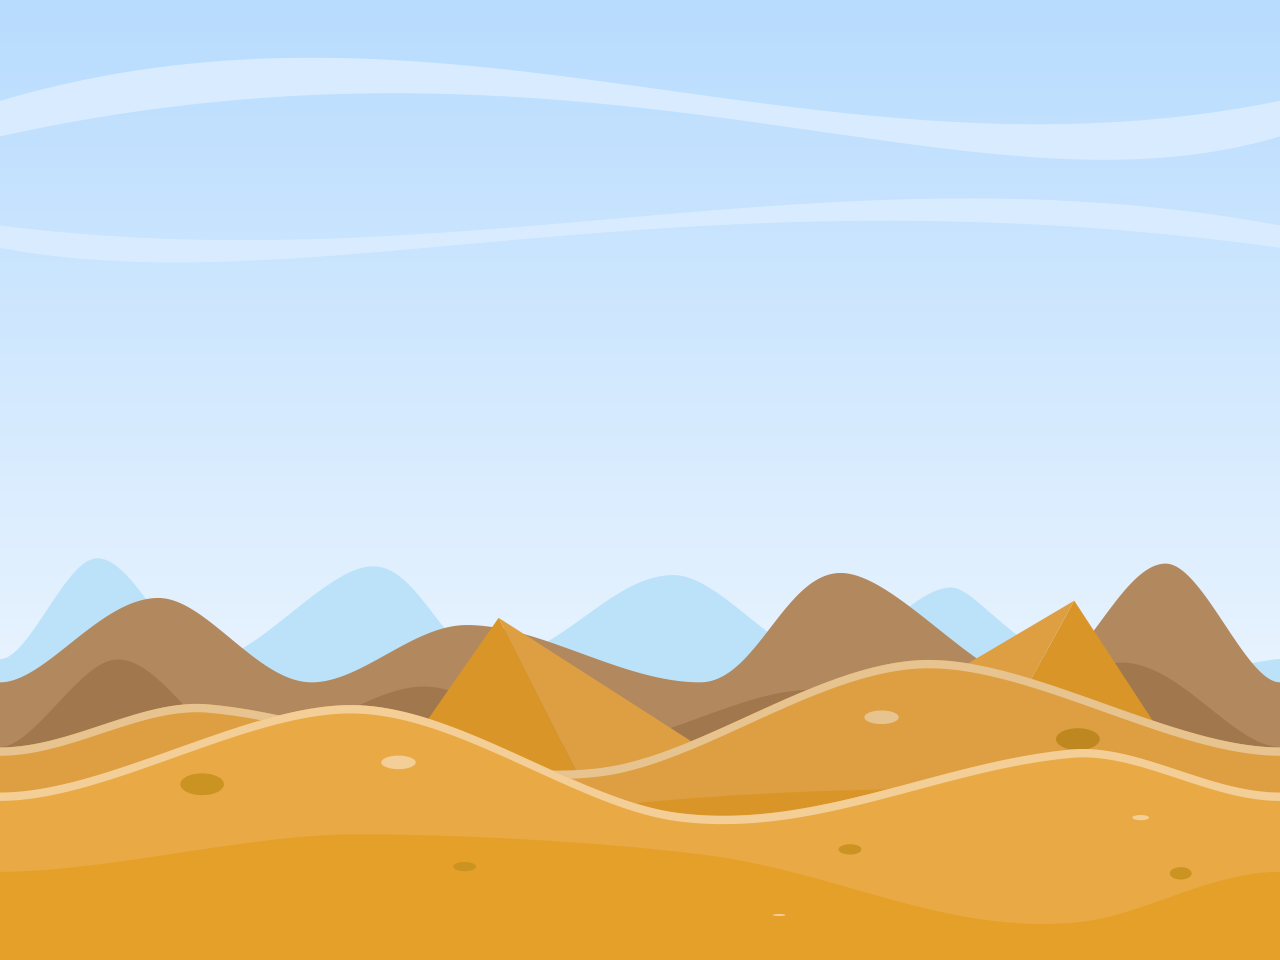 Clipart mountain sand. Free desert cliparts download